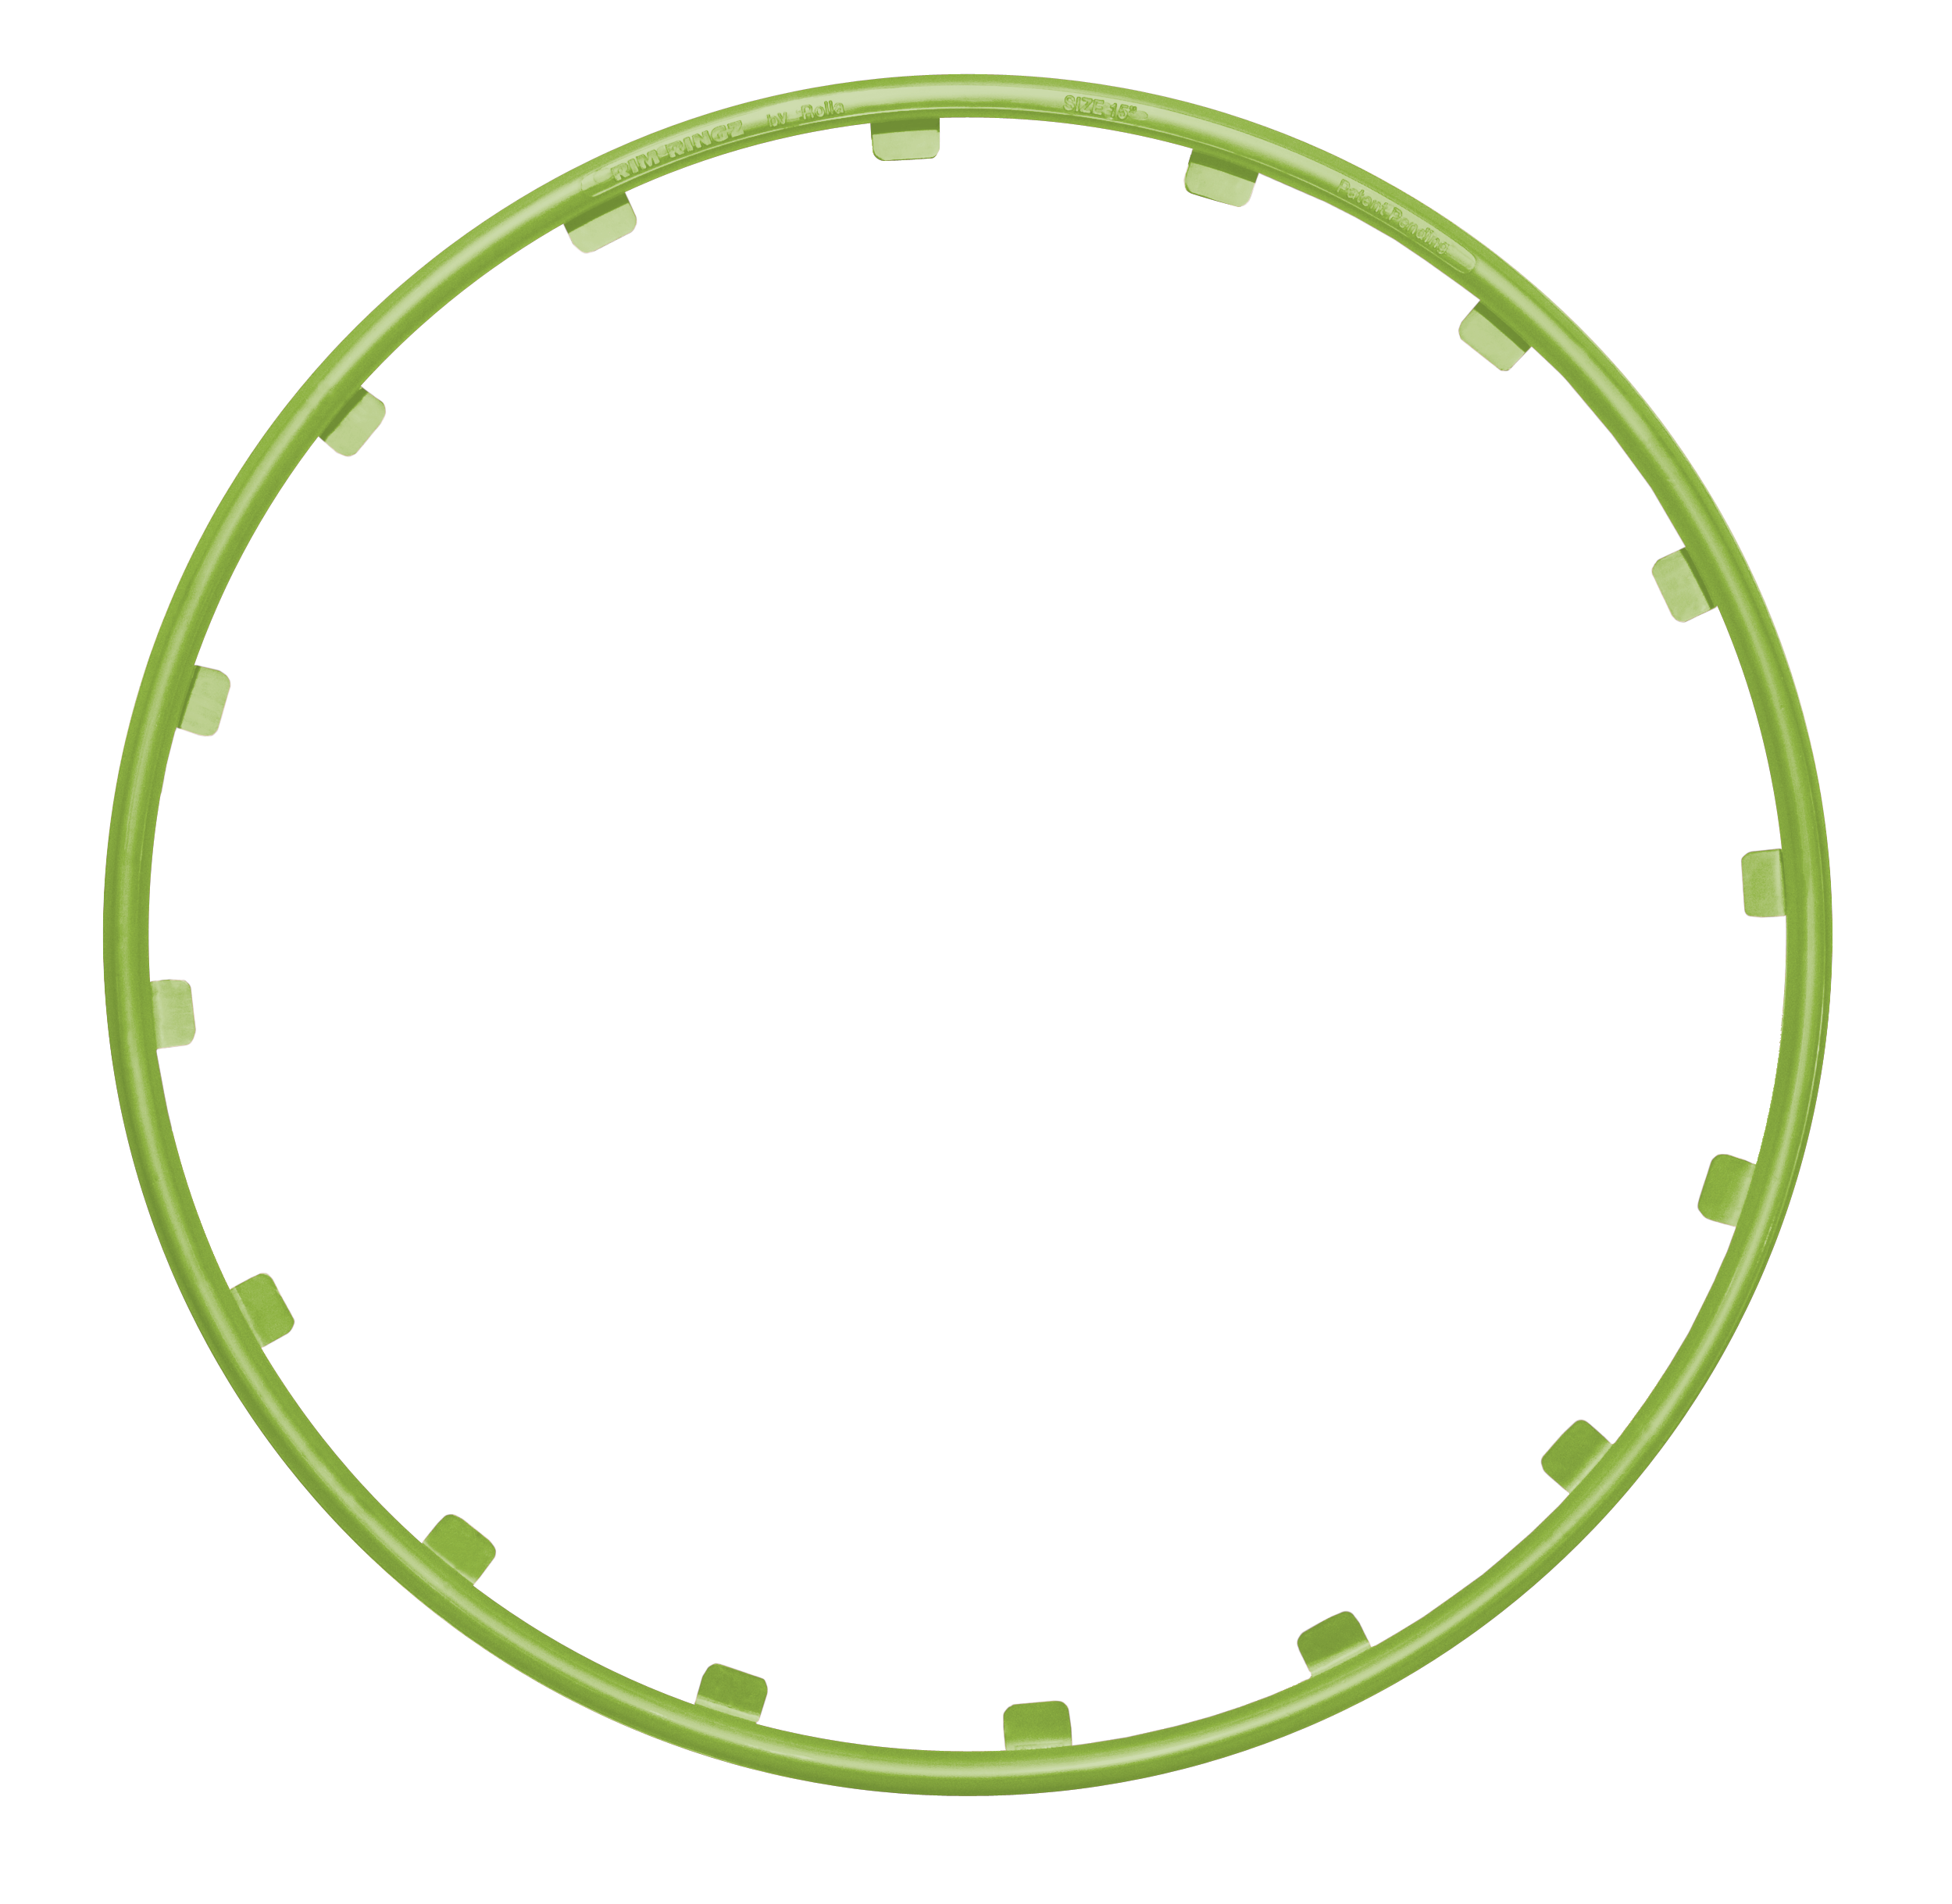 rim-ringz-irish-green-2.png